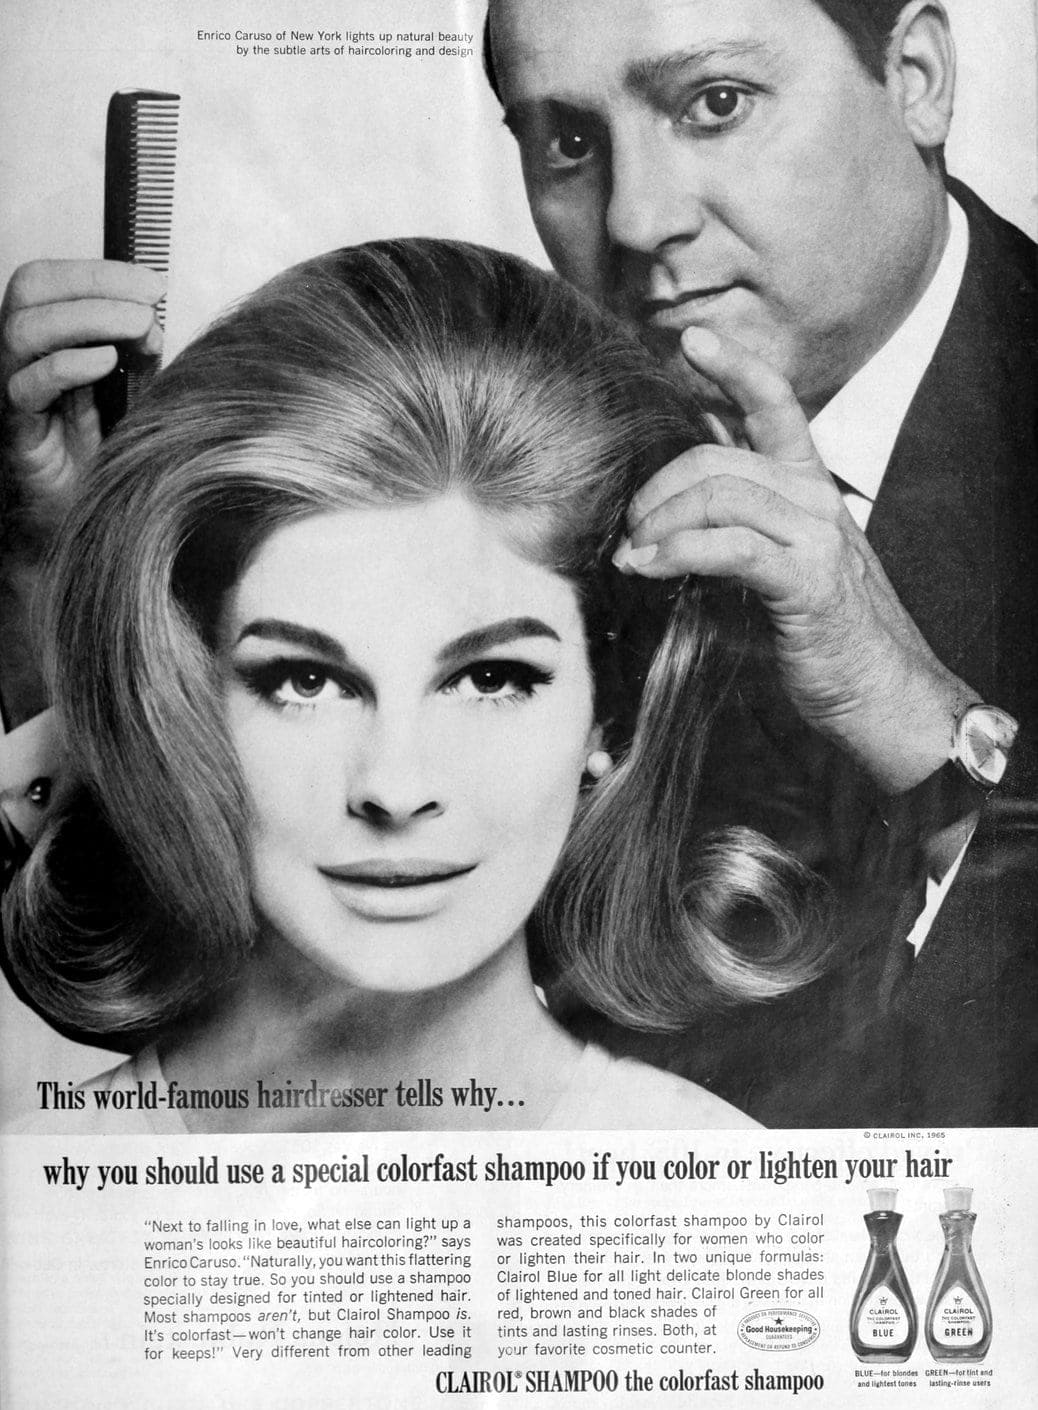 Vintage Candice Bergen for Clairol Shampoo (1965)